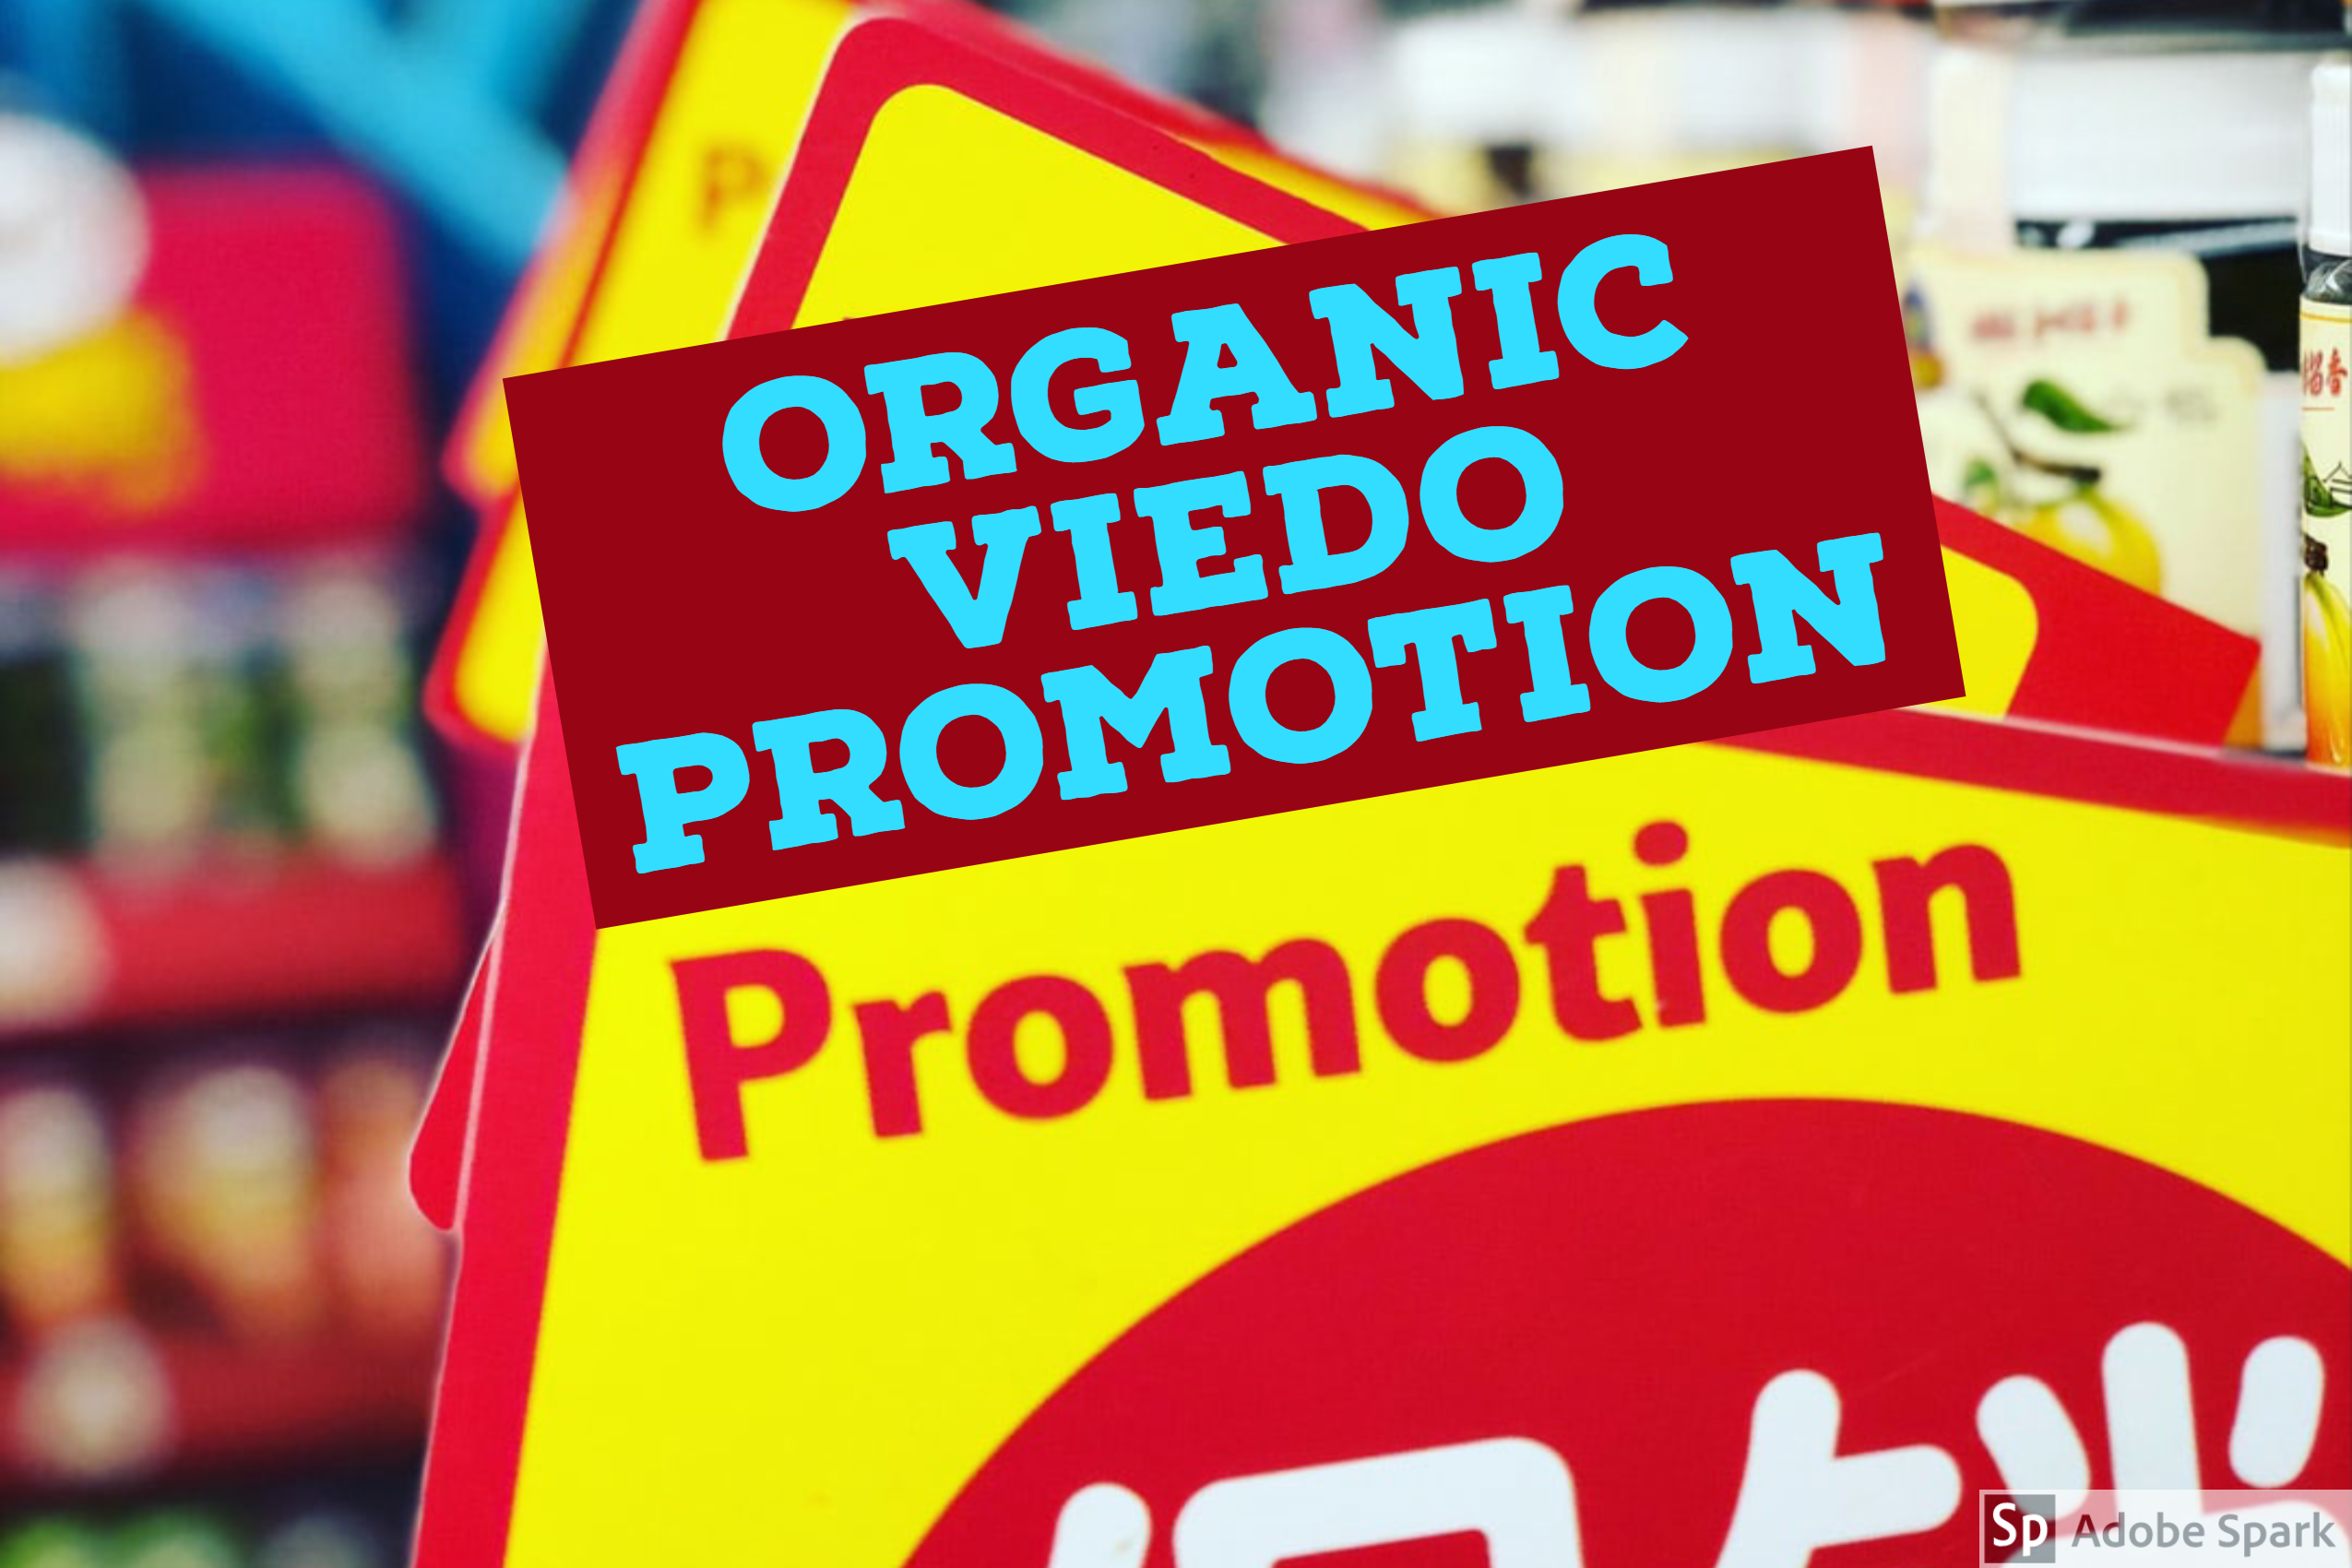 I will promote youtube video organically